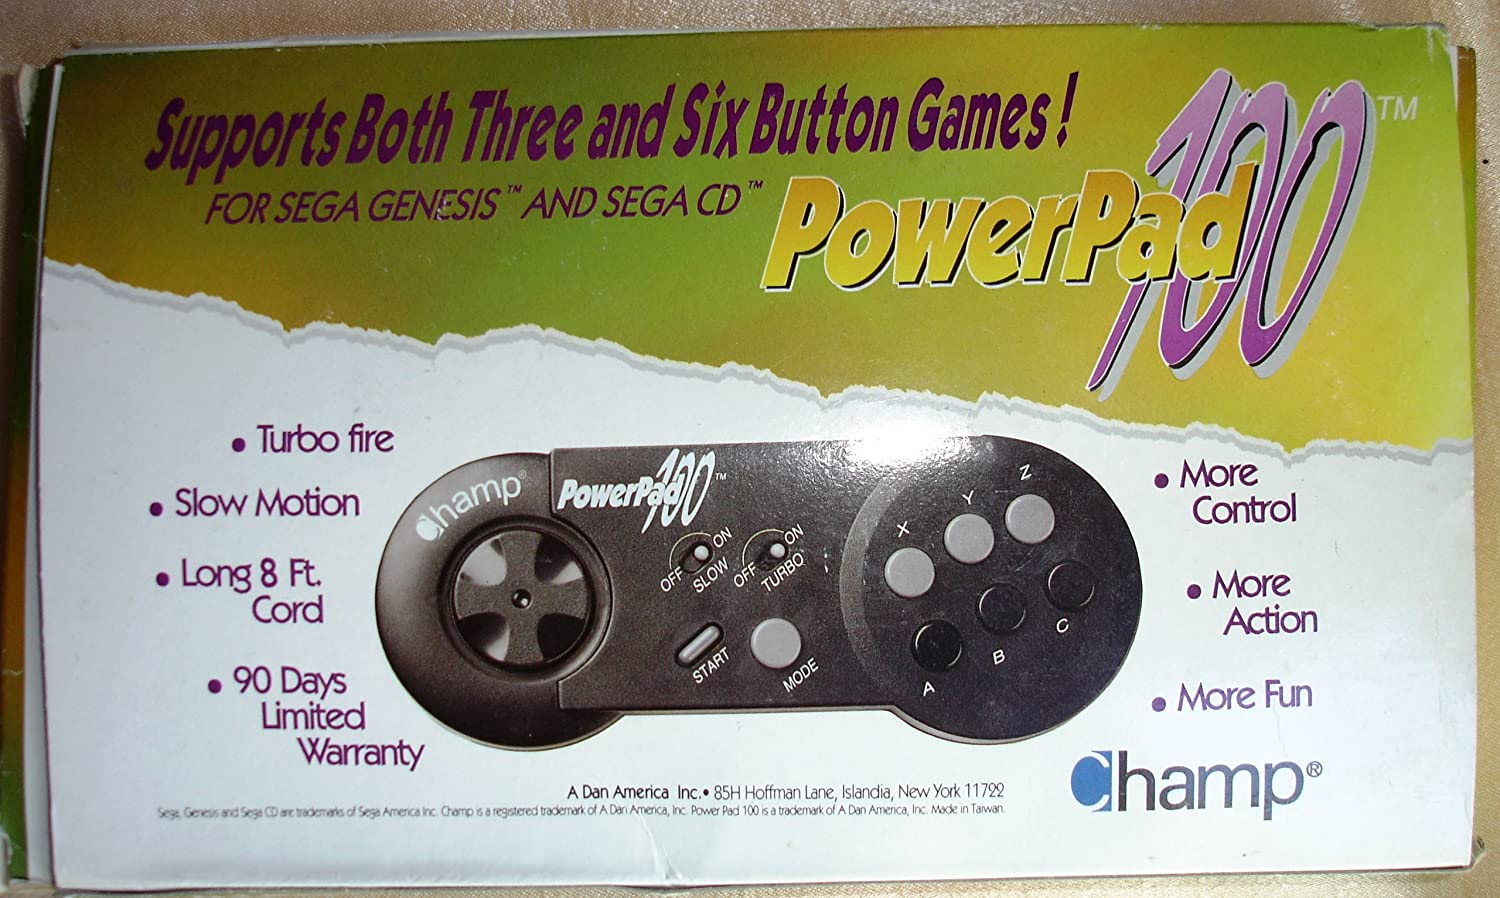 Amazon.com : Champ PowerPad 100-Sega Genesis Controller : Other Products : Everything Else